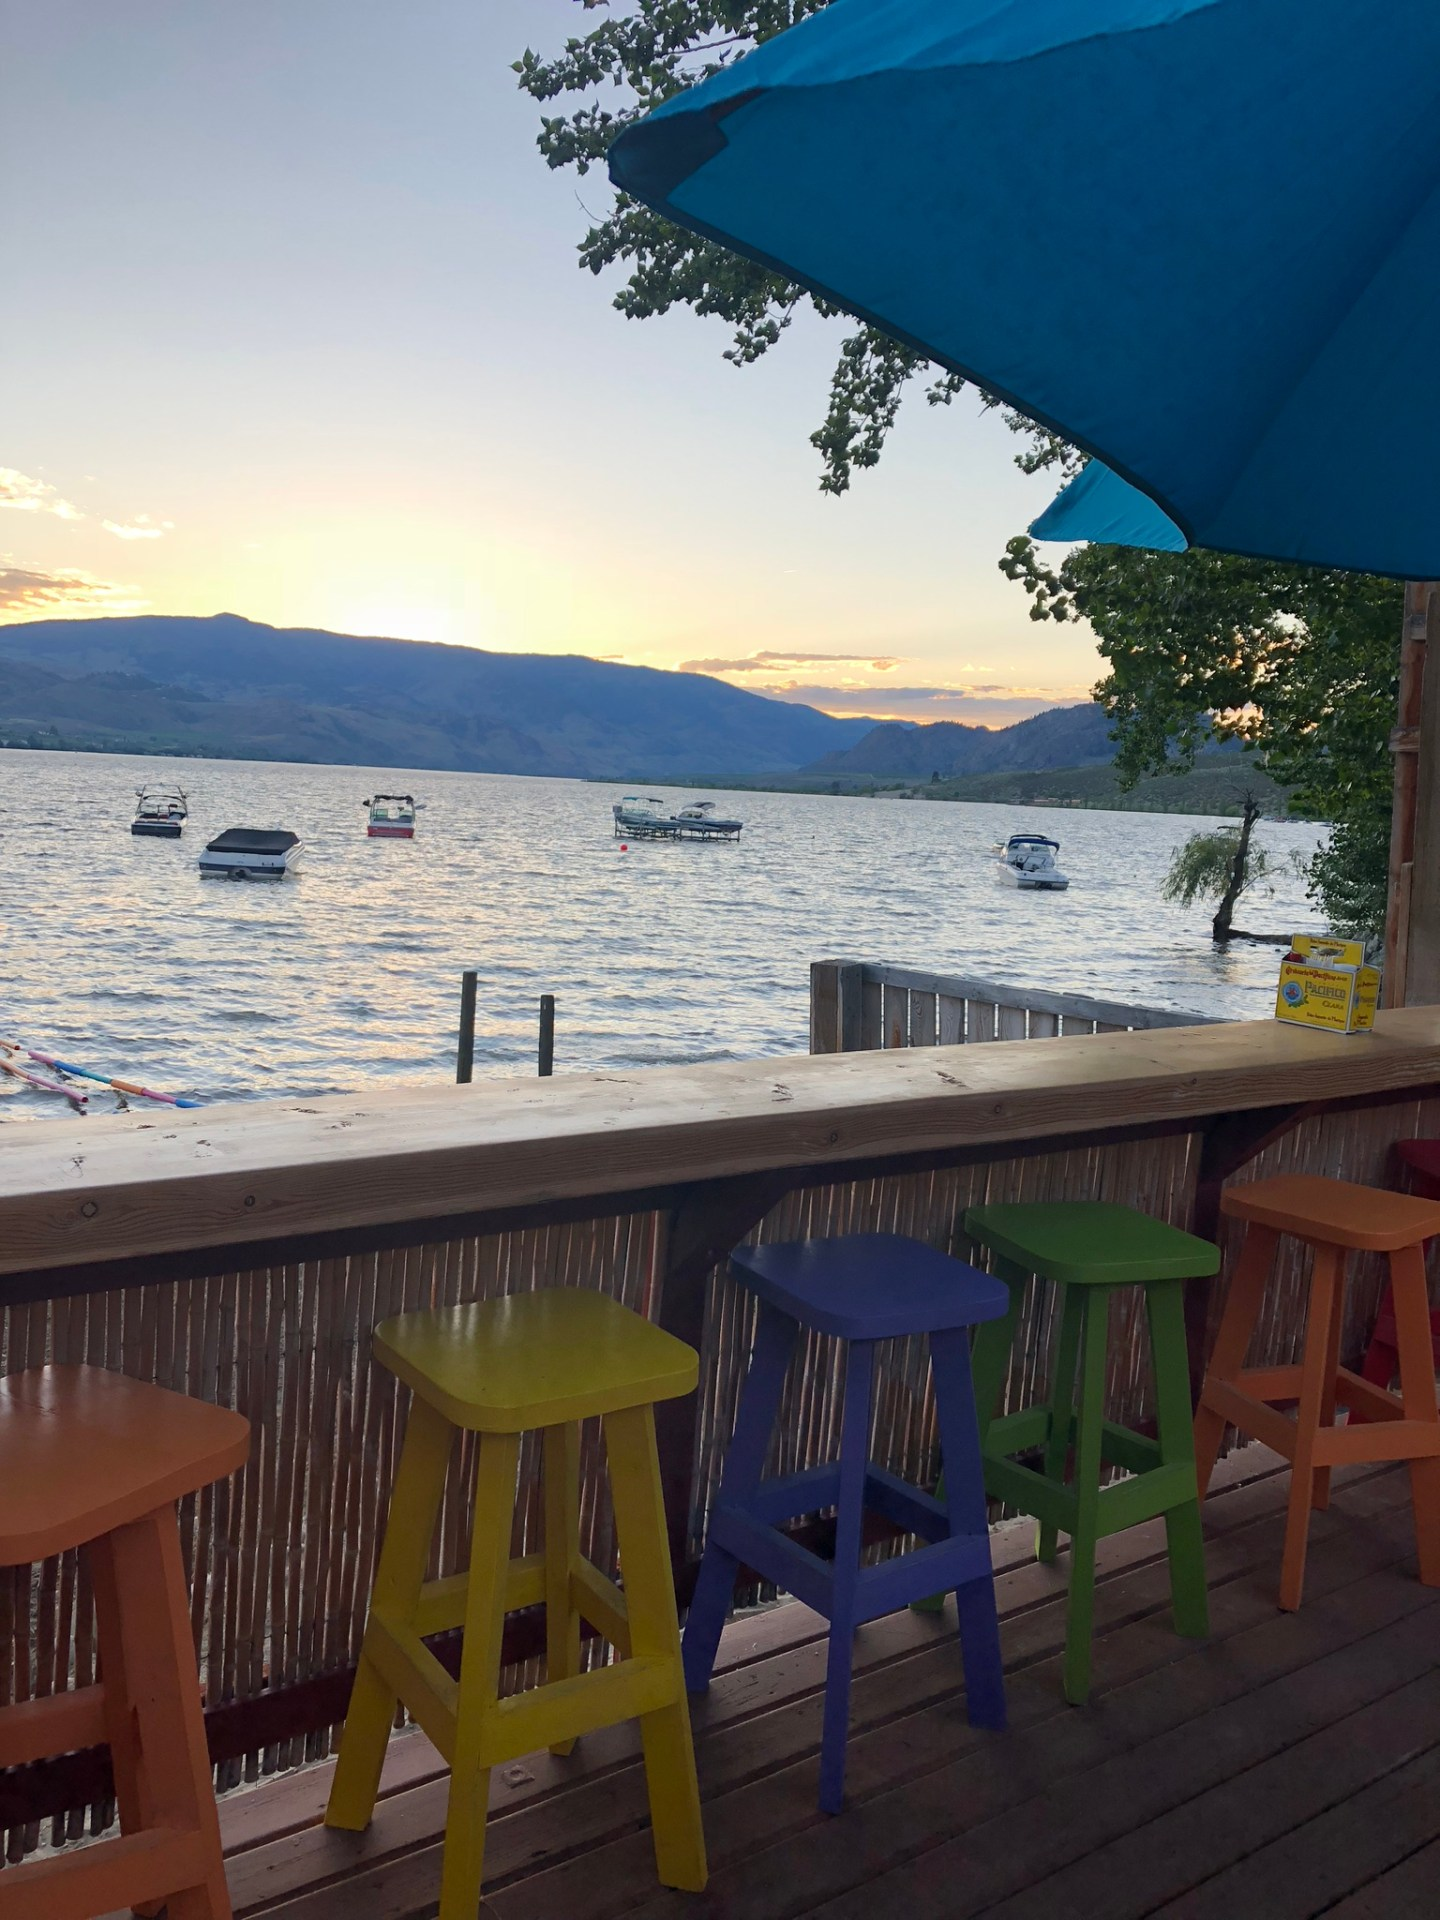 A Day in Osoyoos, British Columbia